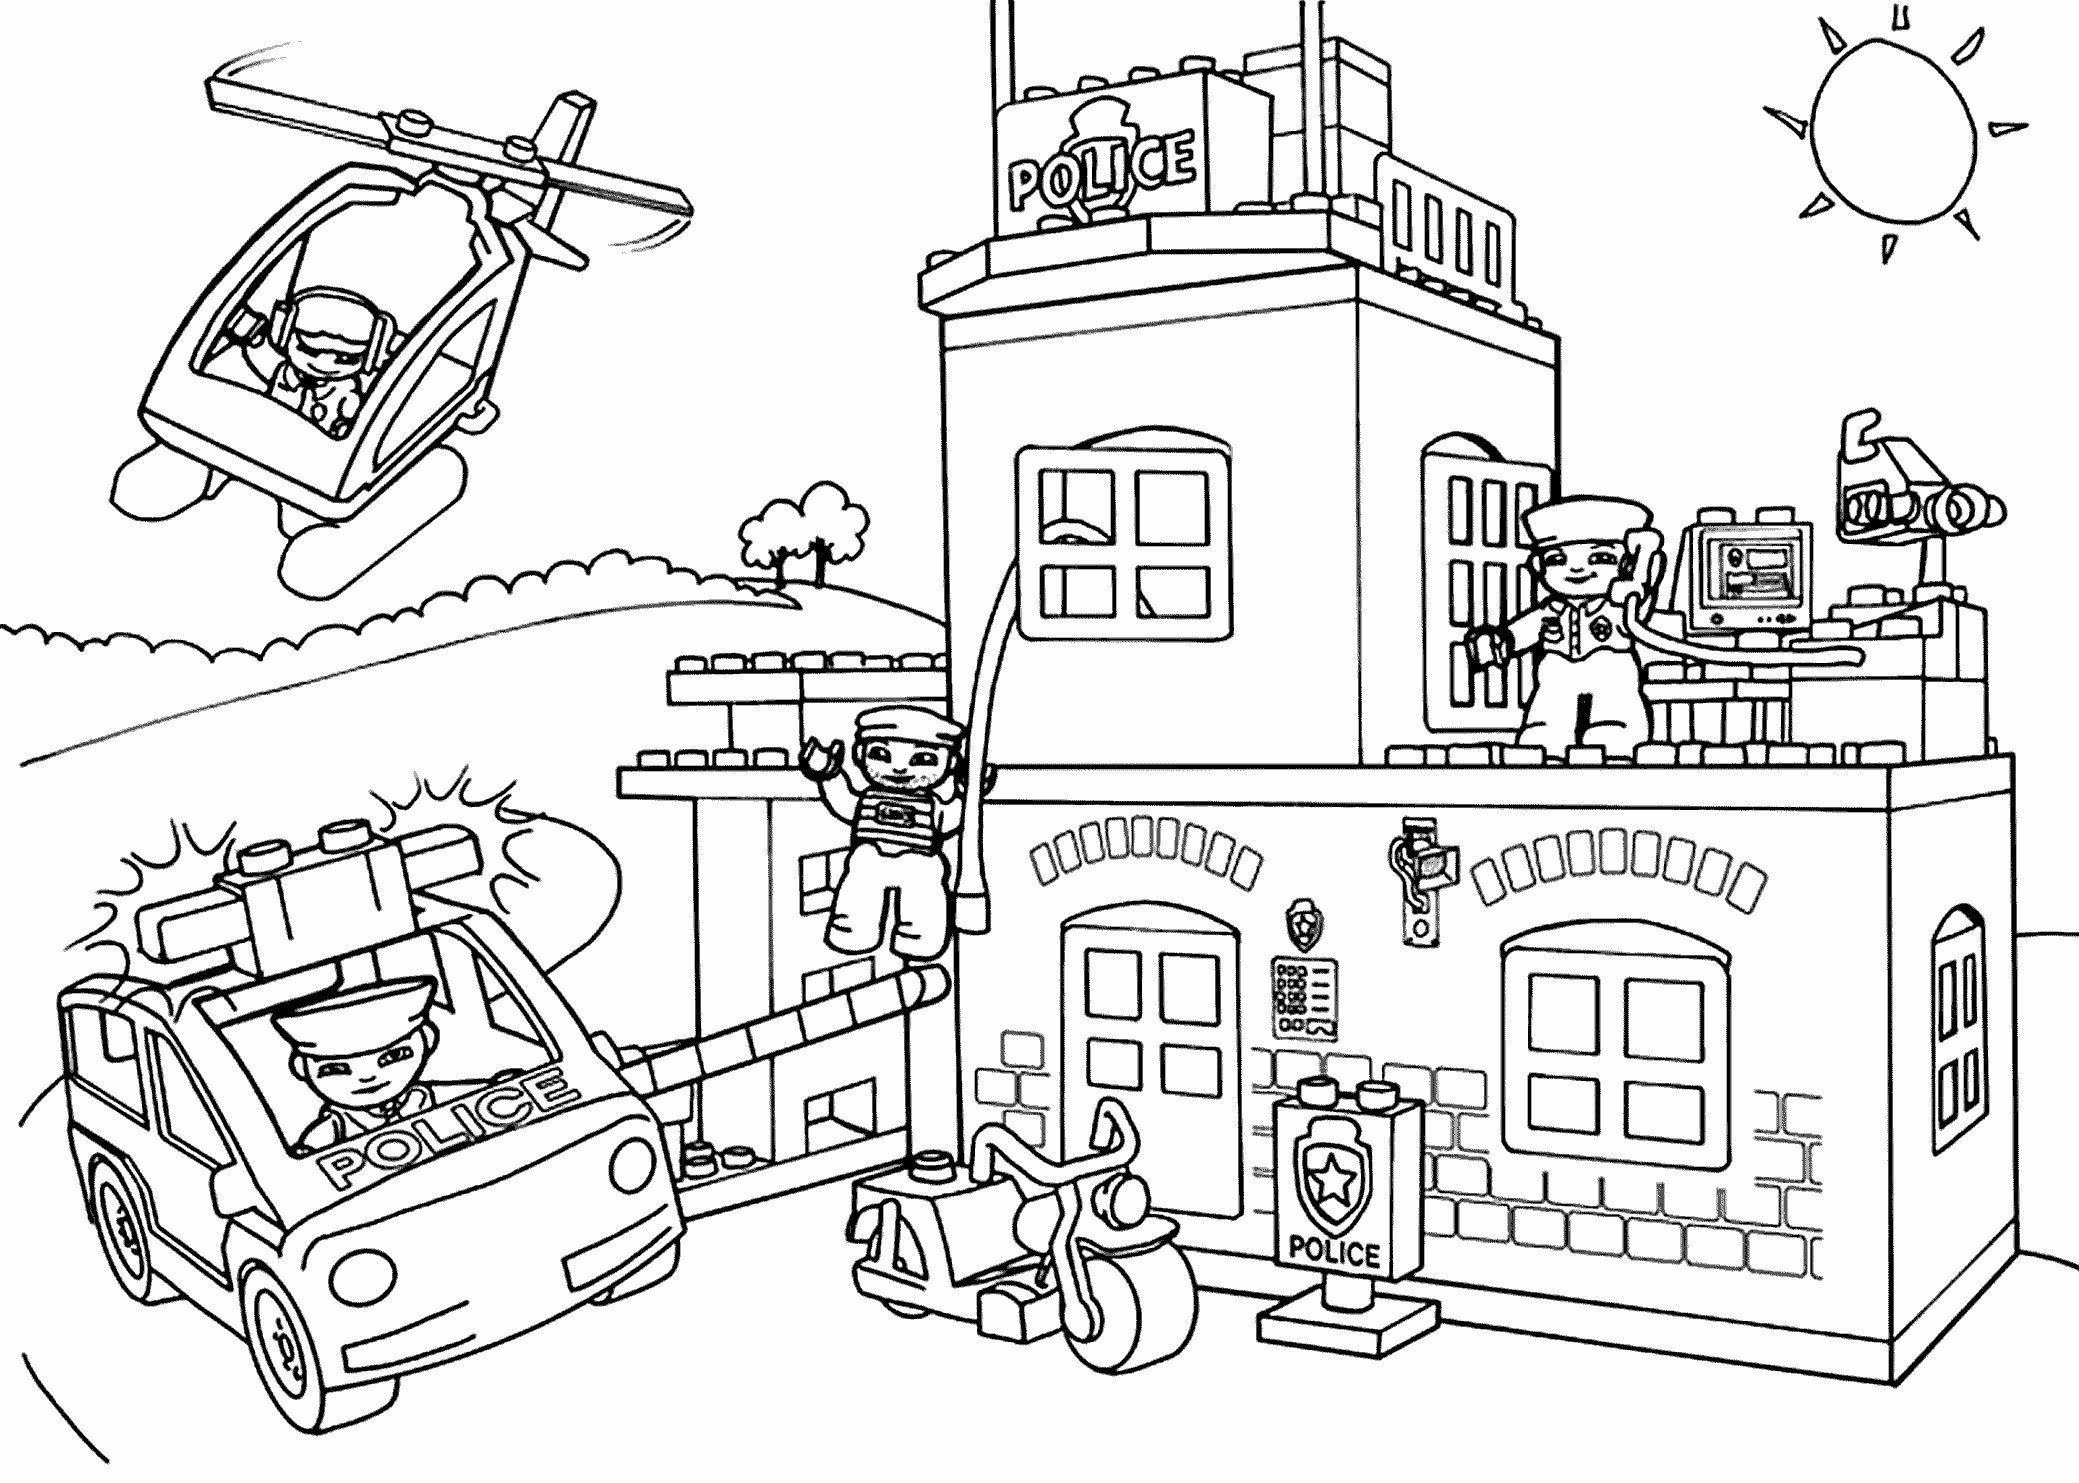 Lego City Coloring Pages Elegant Lego City Coloring Pages Lego Coloring Pages Lego Coloring Cartoon Coloring Pages